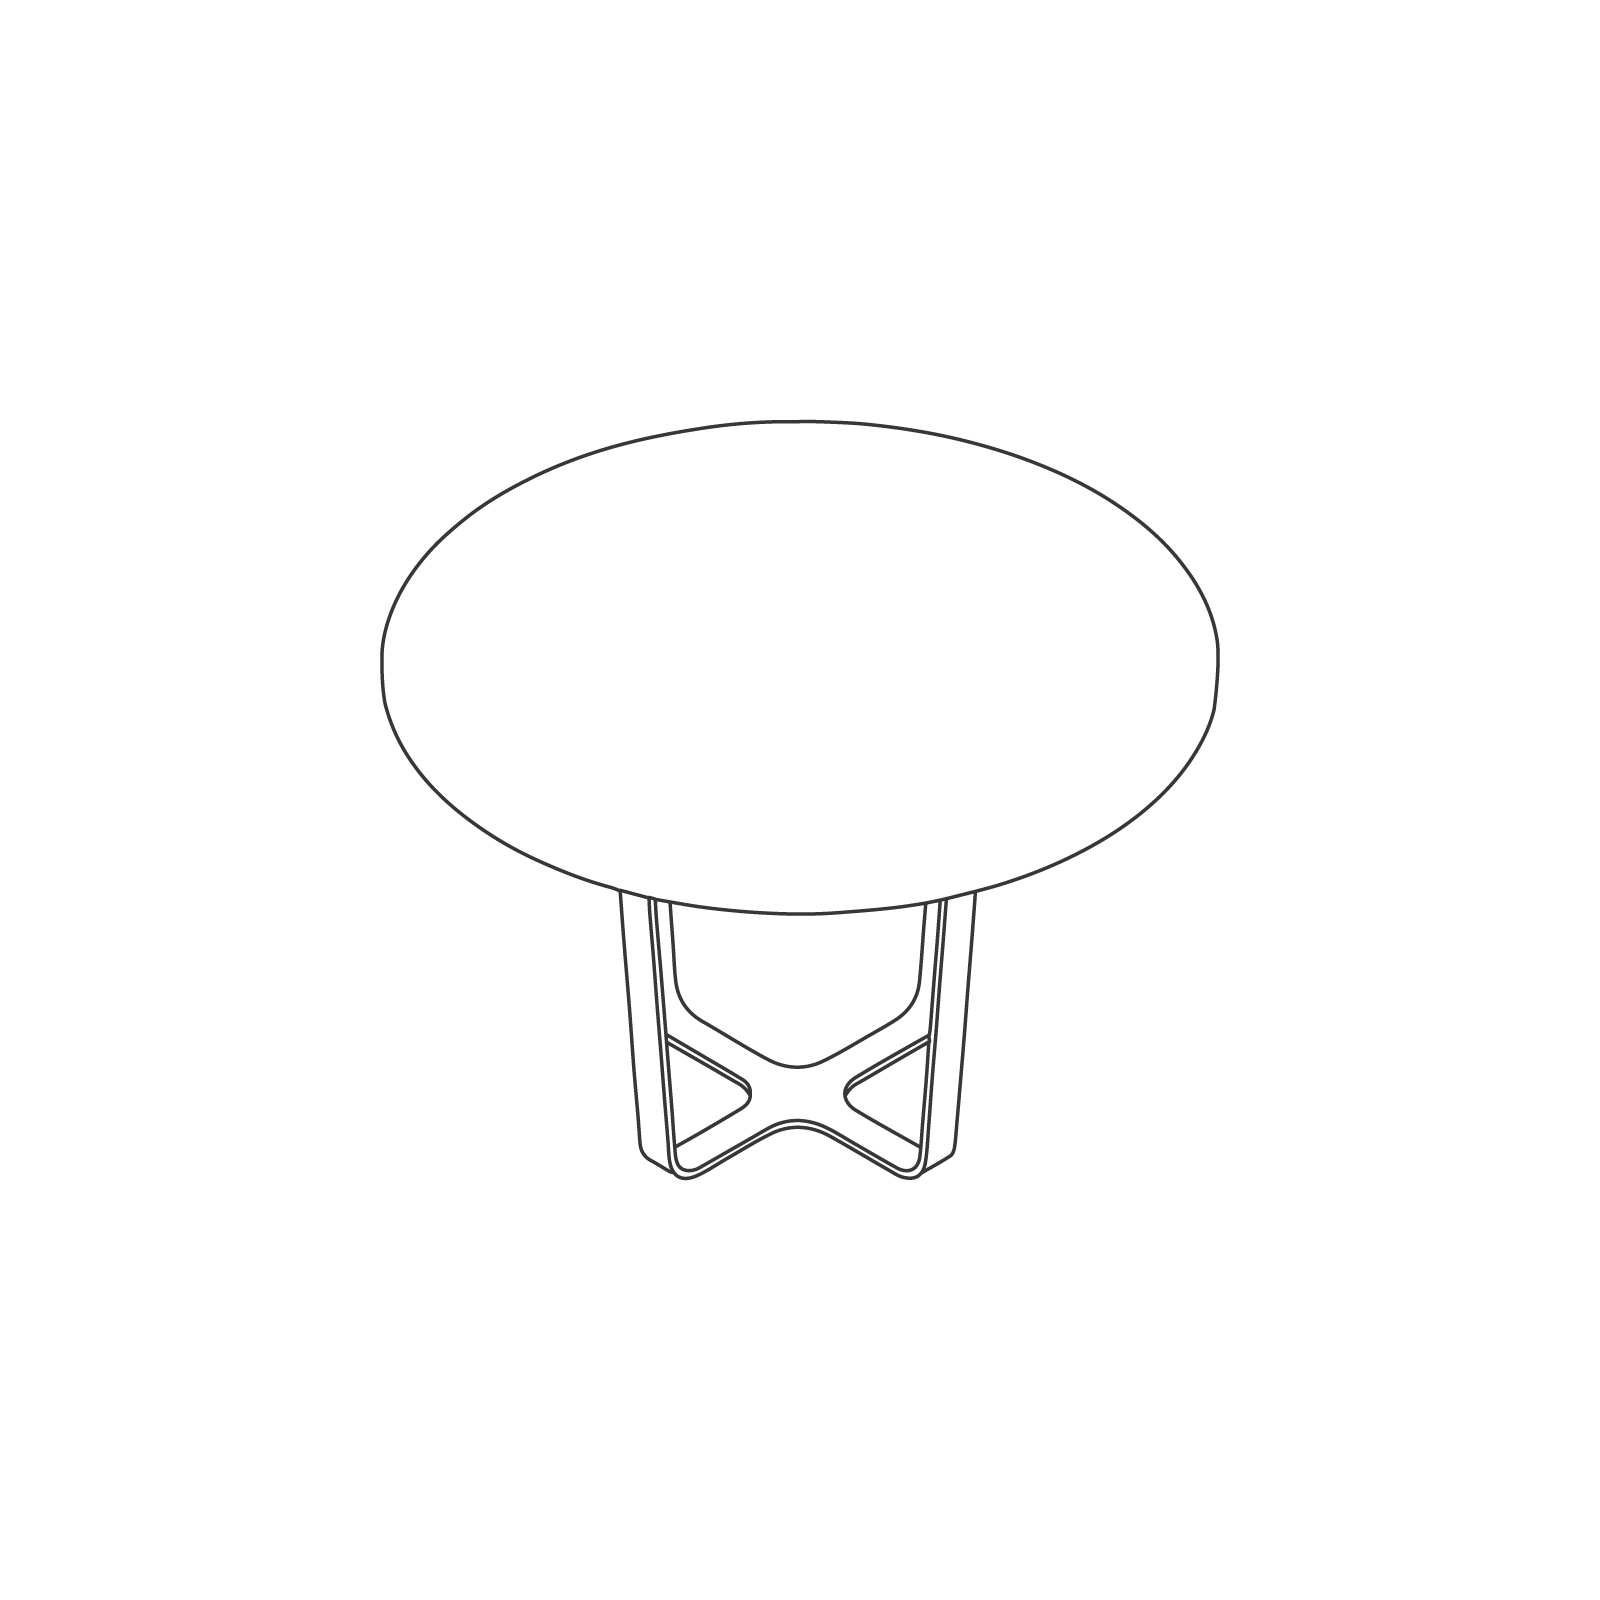 A line drawing of Trace Table–Round.